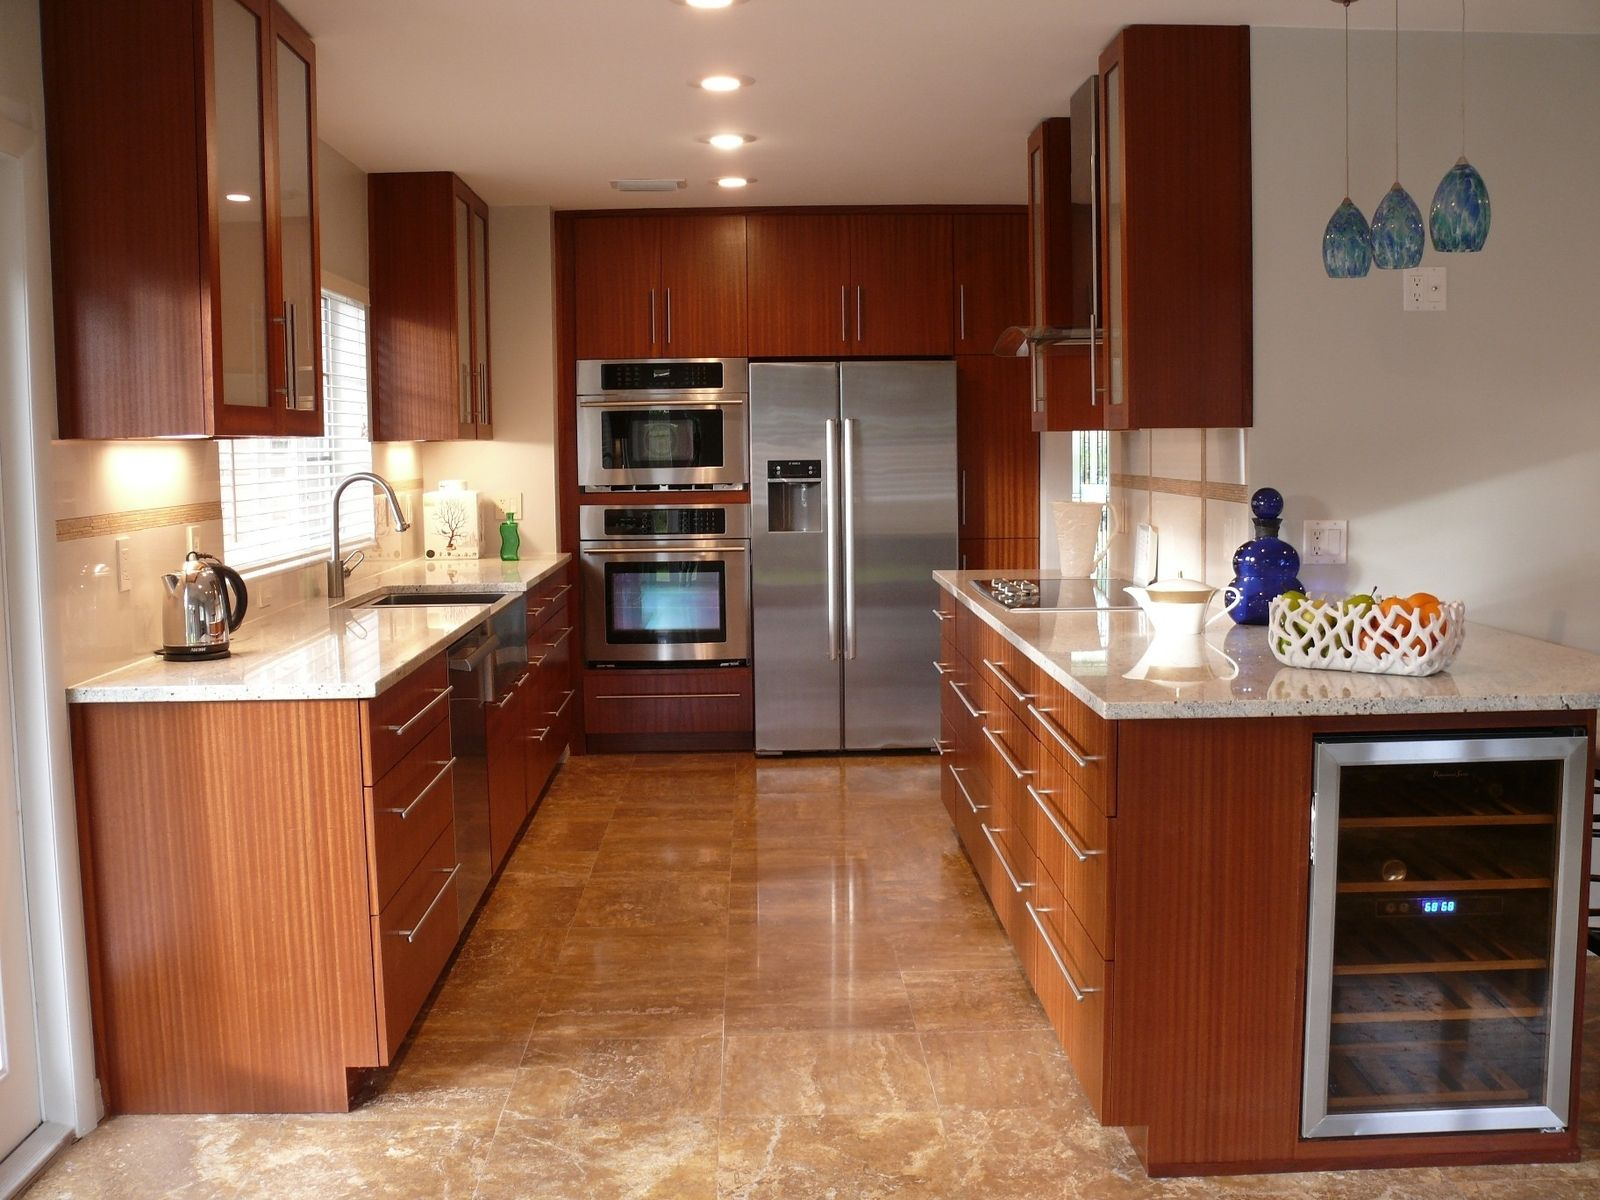 Interior Custom Made Kitchen custom modern mahogany kitchen cabinets by natural mystic woodwork made cabinets